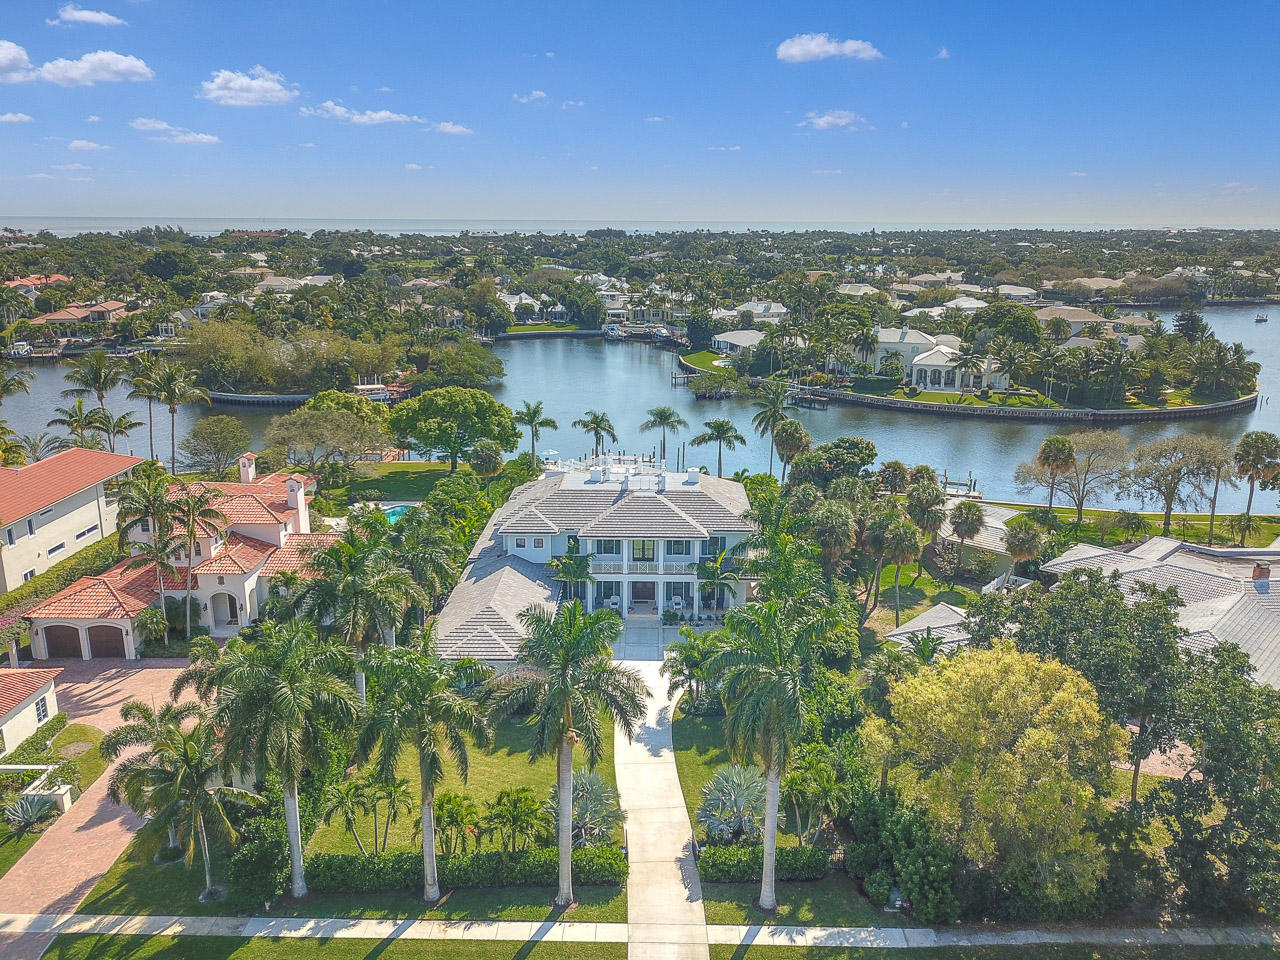 12132 Captains Landing(s), North Palm Beach, Florida 33408, 5 Bedrooms Bedrooms, ,5 BathroomsBathrooms,A,Single family,Captains,RX-10506427